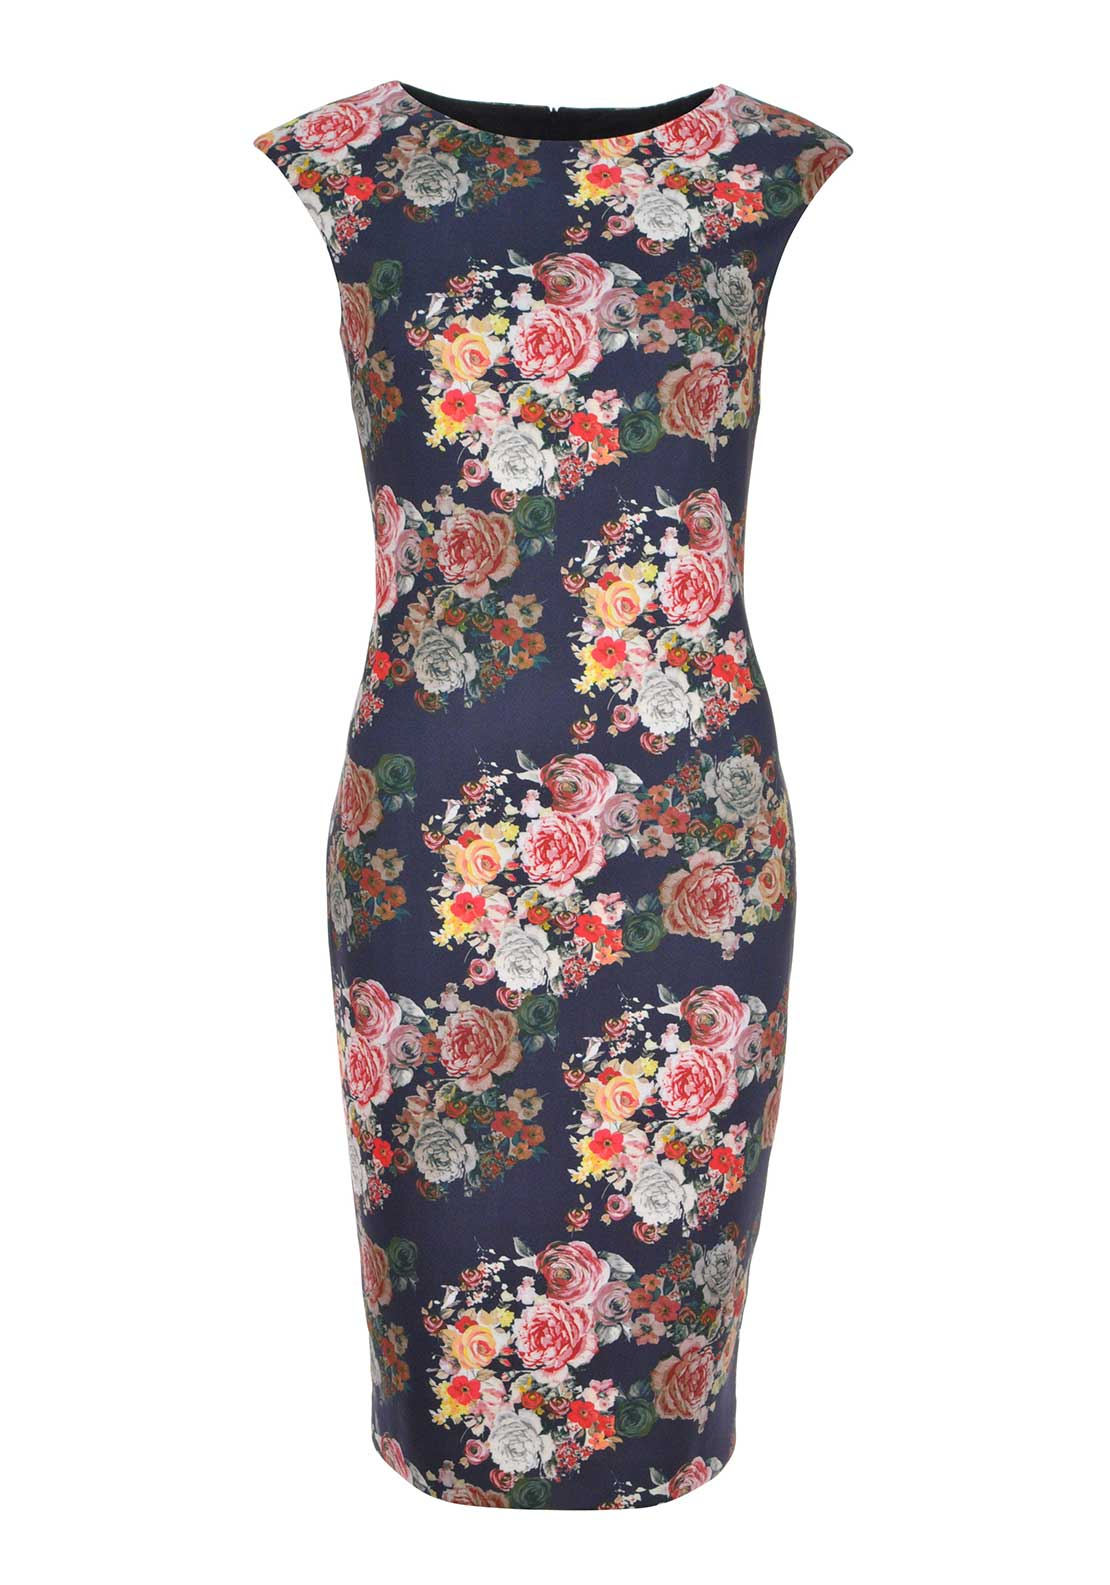 Dress by Aideen Bodkin Floral Print Sleeveless Pencil Dress, Navy Multi